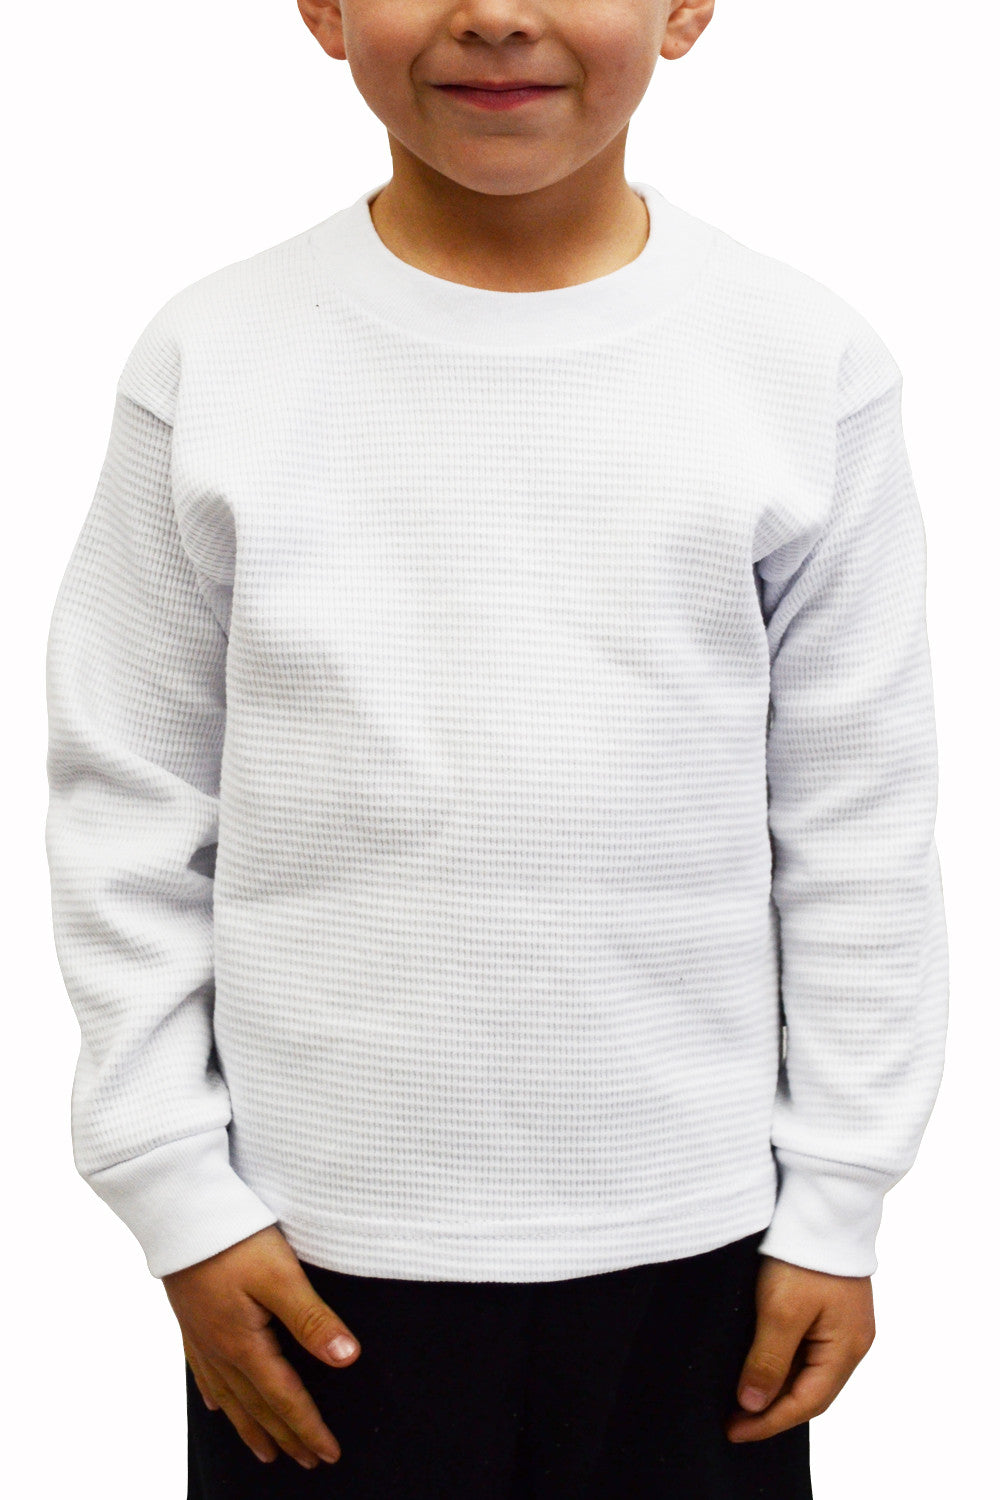 Kids Thermal Knit Tops Long Sleeve White